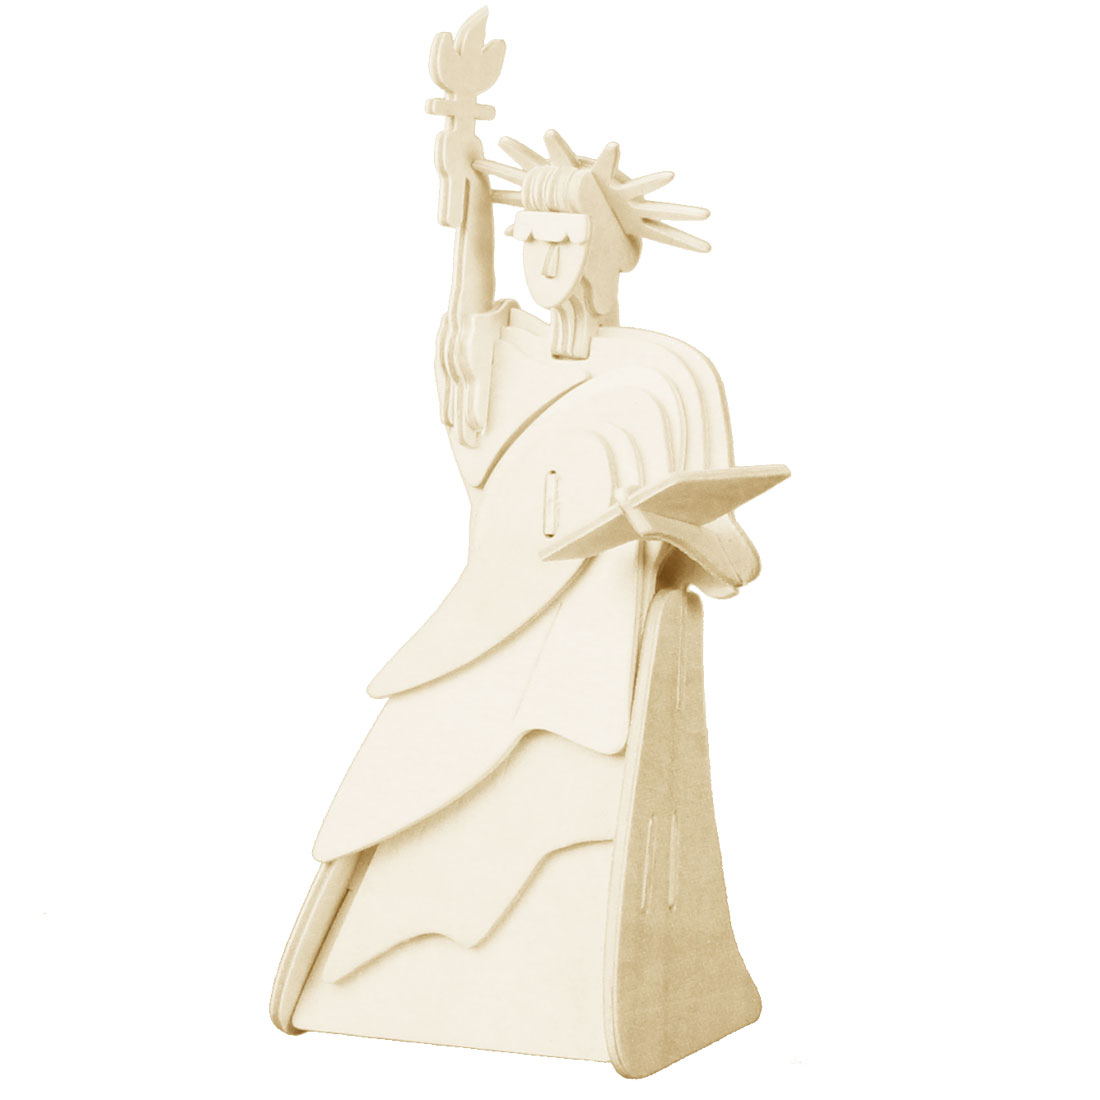 3D The Statue of Liberty Assembly Model Puzzle Toy Beige for Children